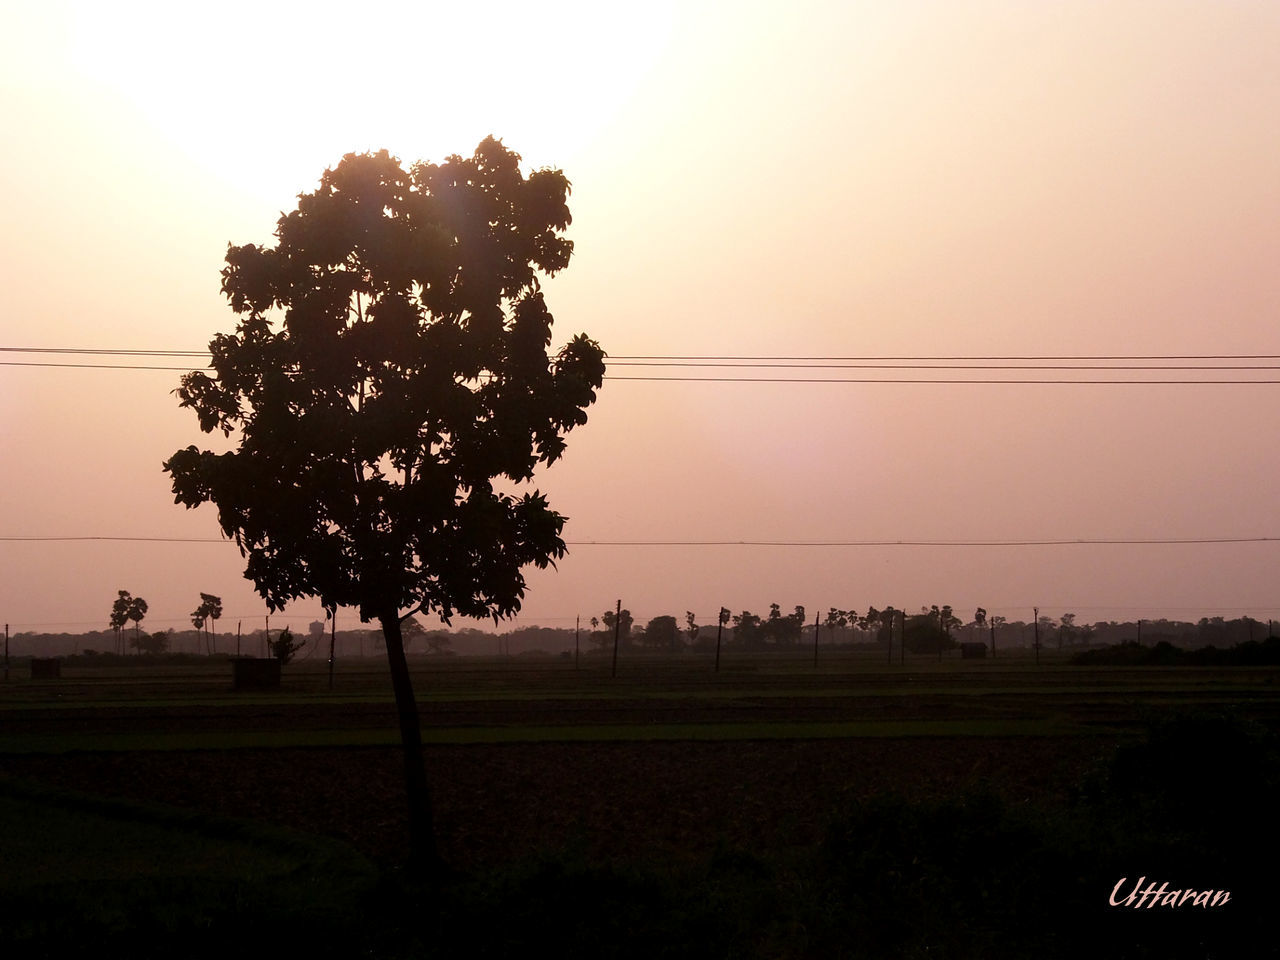 The Great Outdoors - 2015 EyeEm Awards Eye Em Best Shots - Nature Nature Photography Eyem Best Shots Nature_collection Landscape Banglar Mukh Tadda Community EyeEm Best Shots - Landscape EyeEm Best Shots - Sunsets + Sunrise Creative Light And Shadow